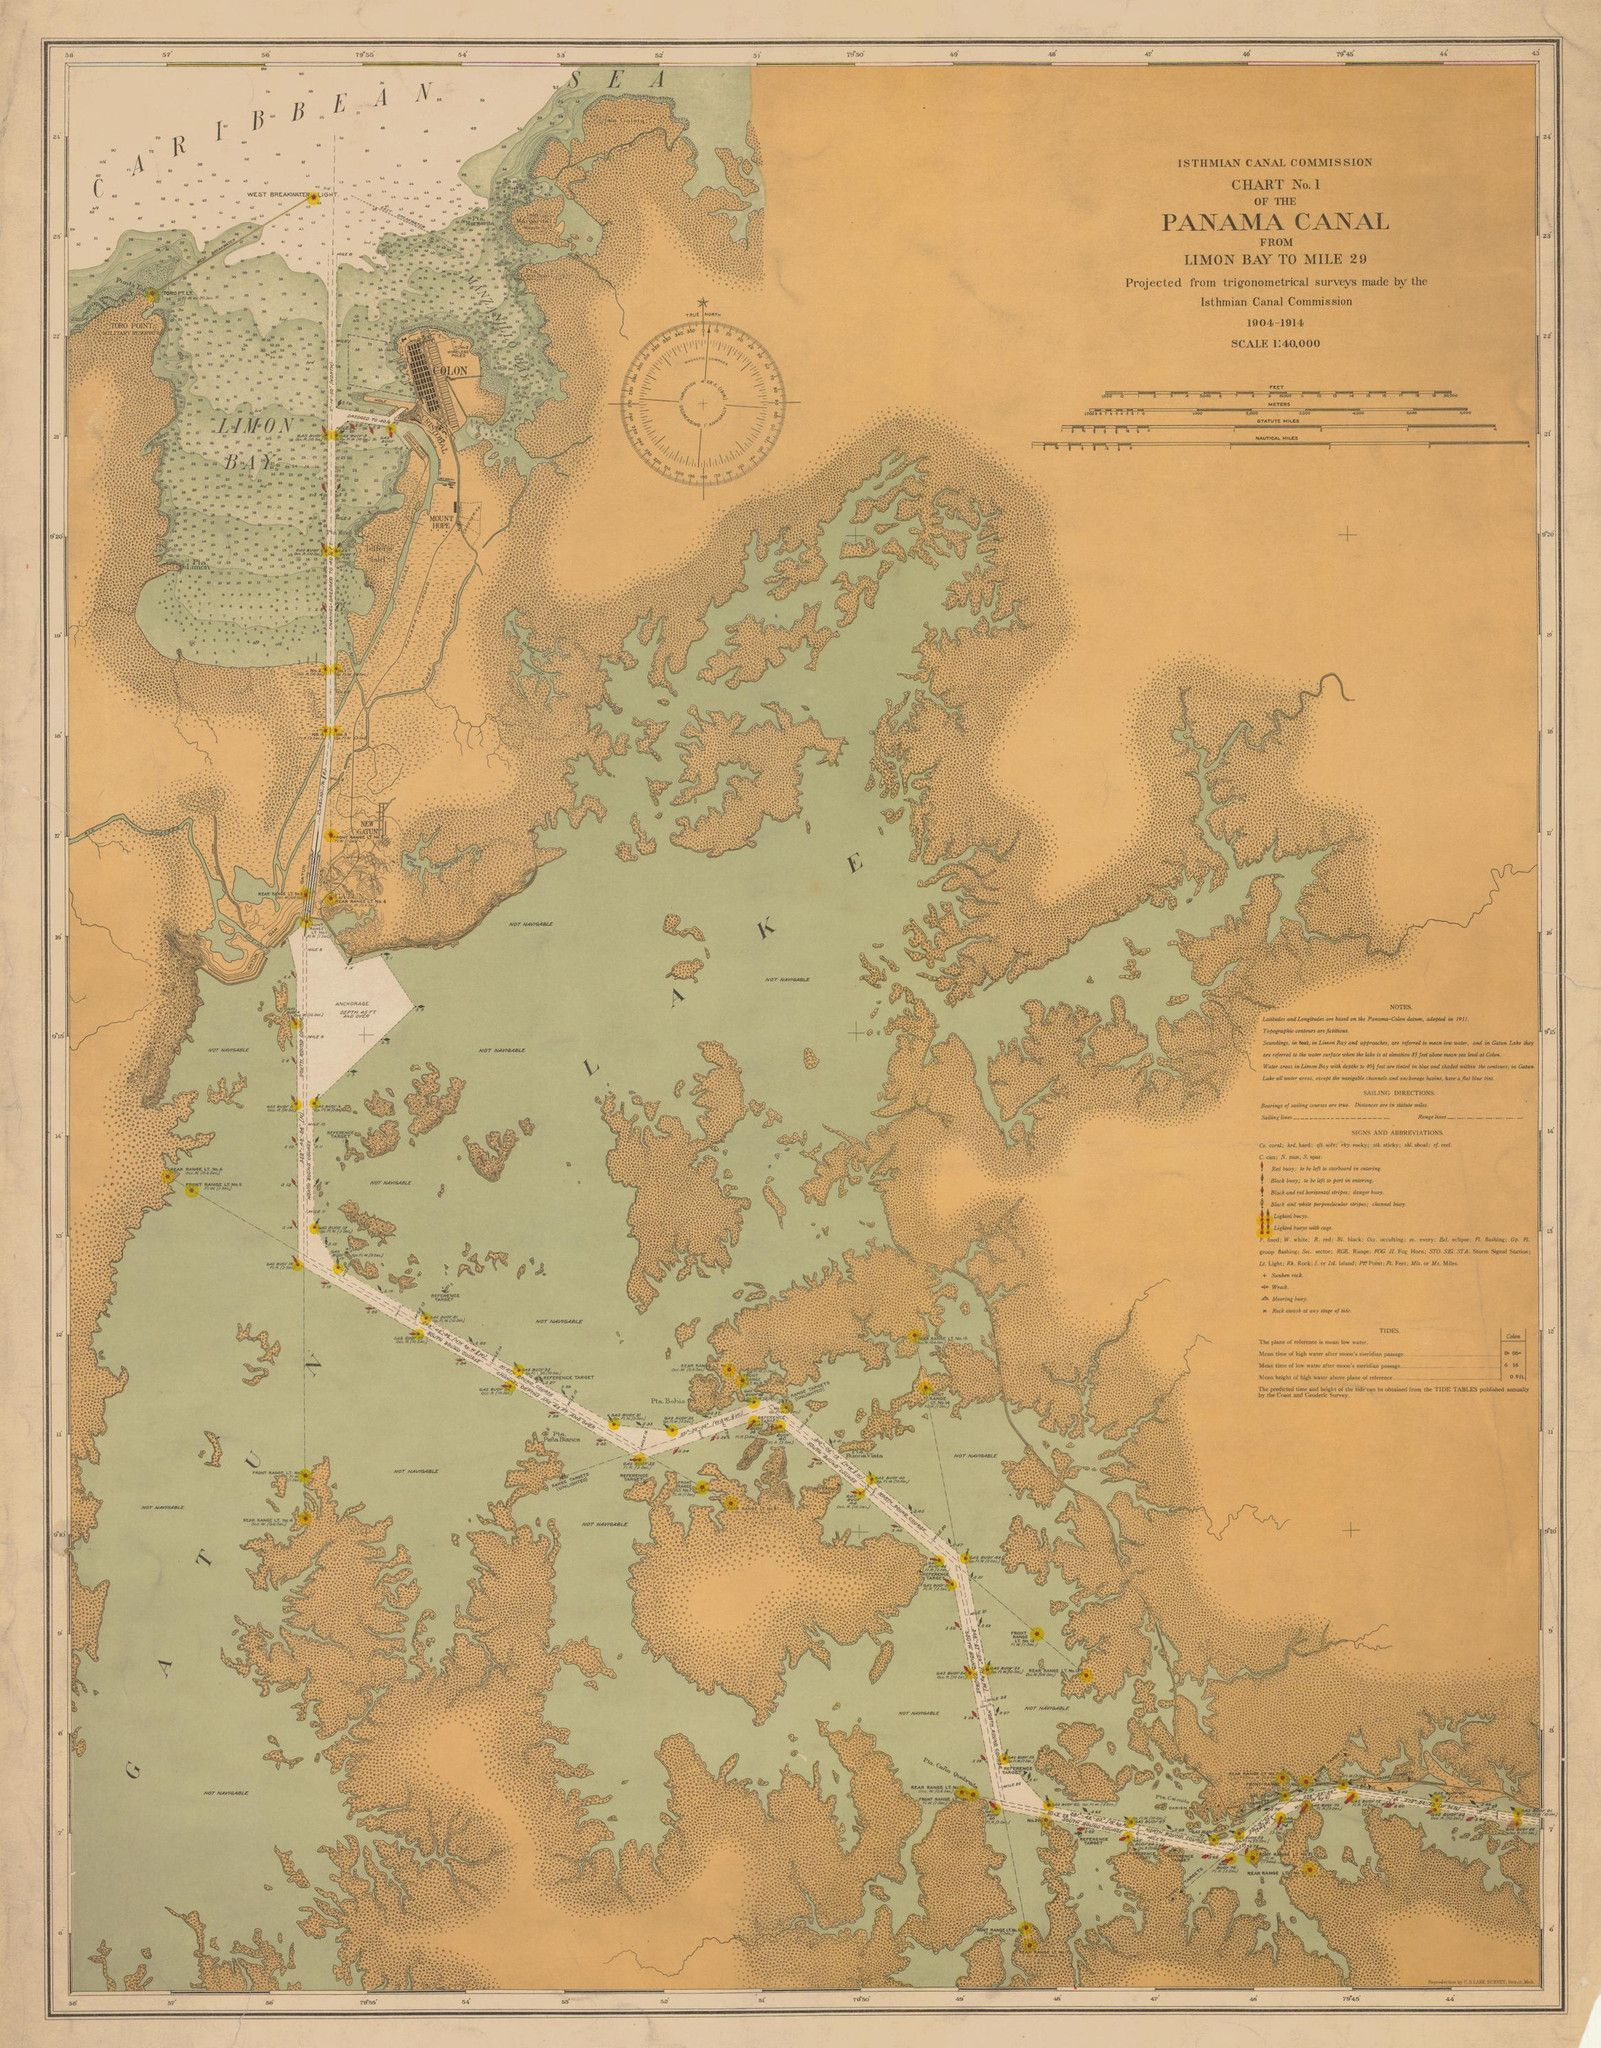 Puget Sound /& Admiralty Inlet Historical Map 1949